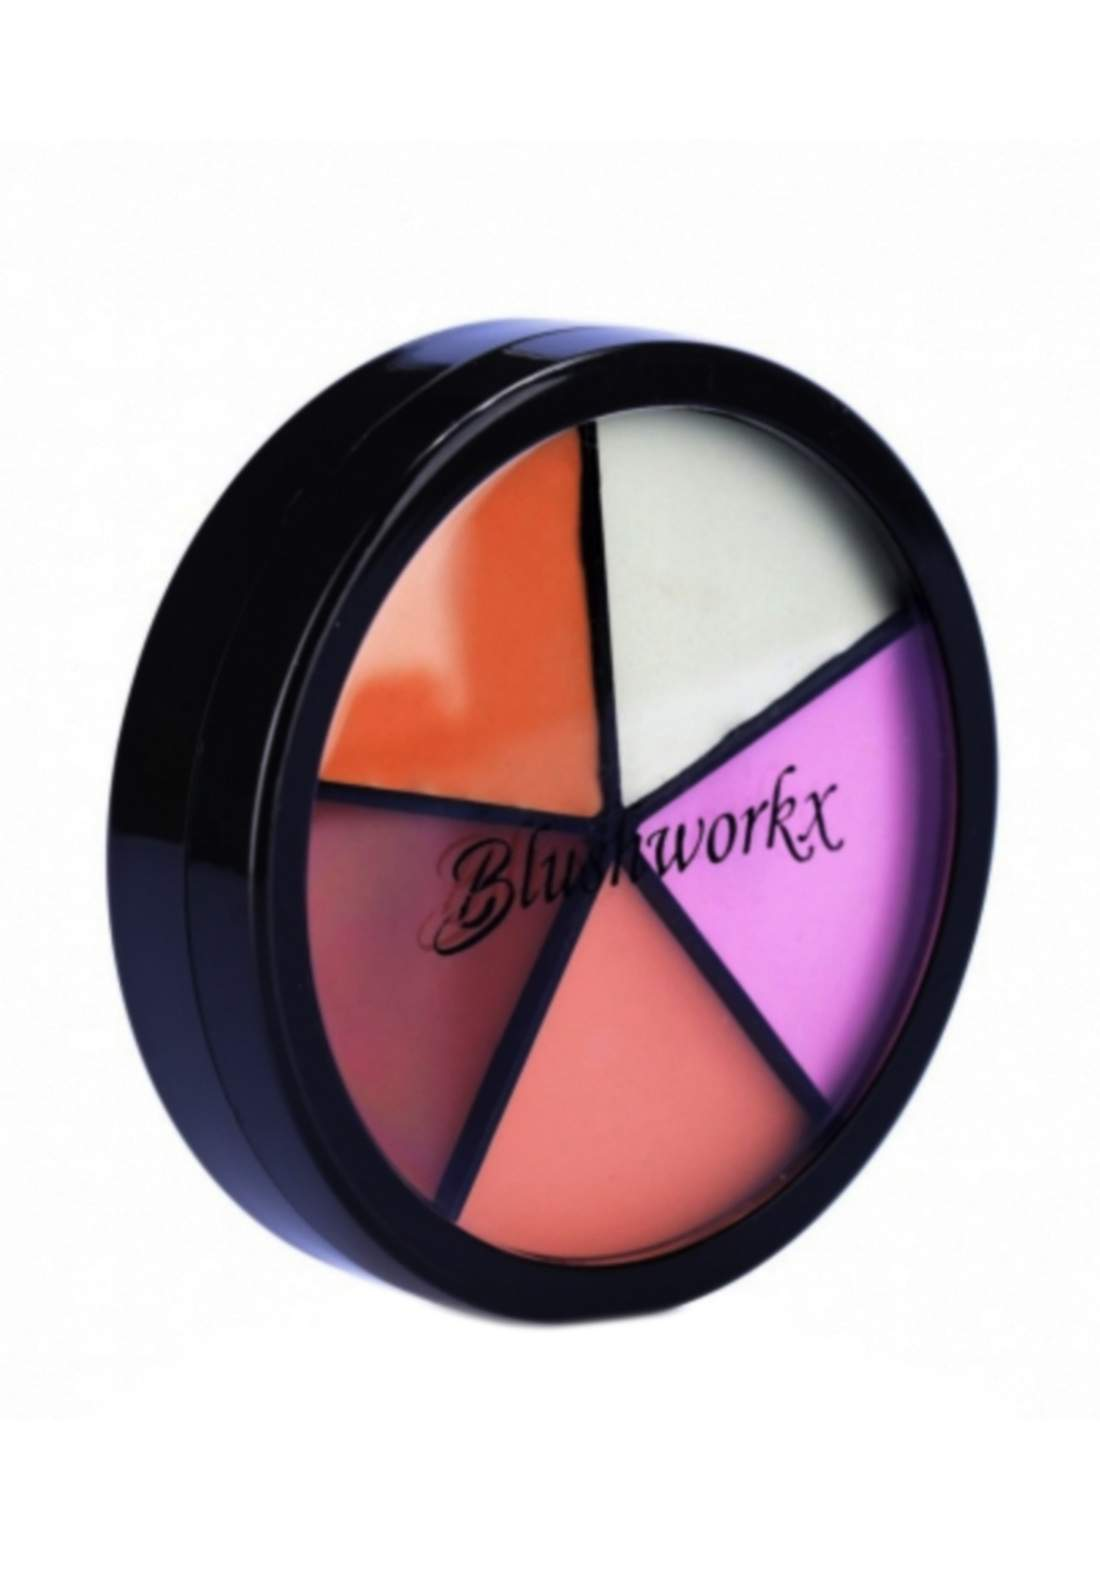 Blushworkx Hollywood All Around Contour Cover Neutrals باليت مصحح وكونتور